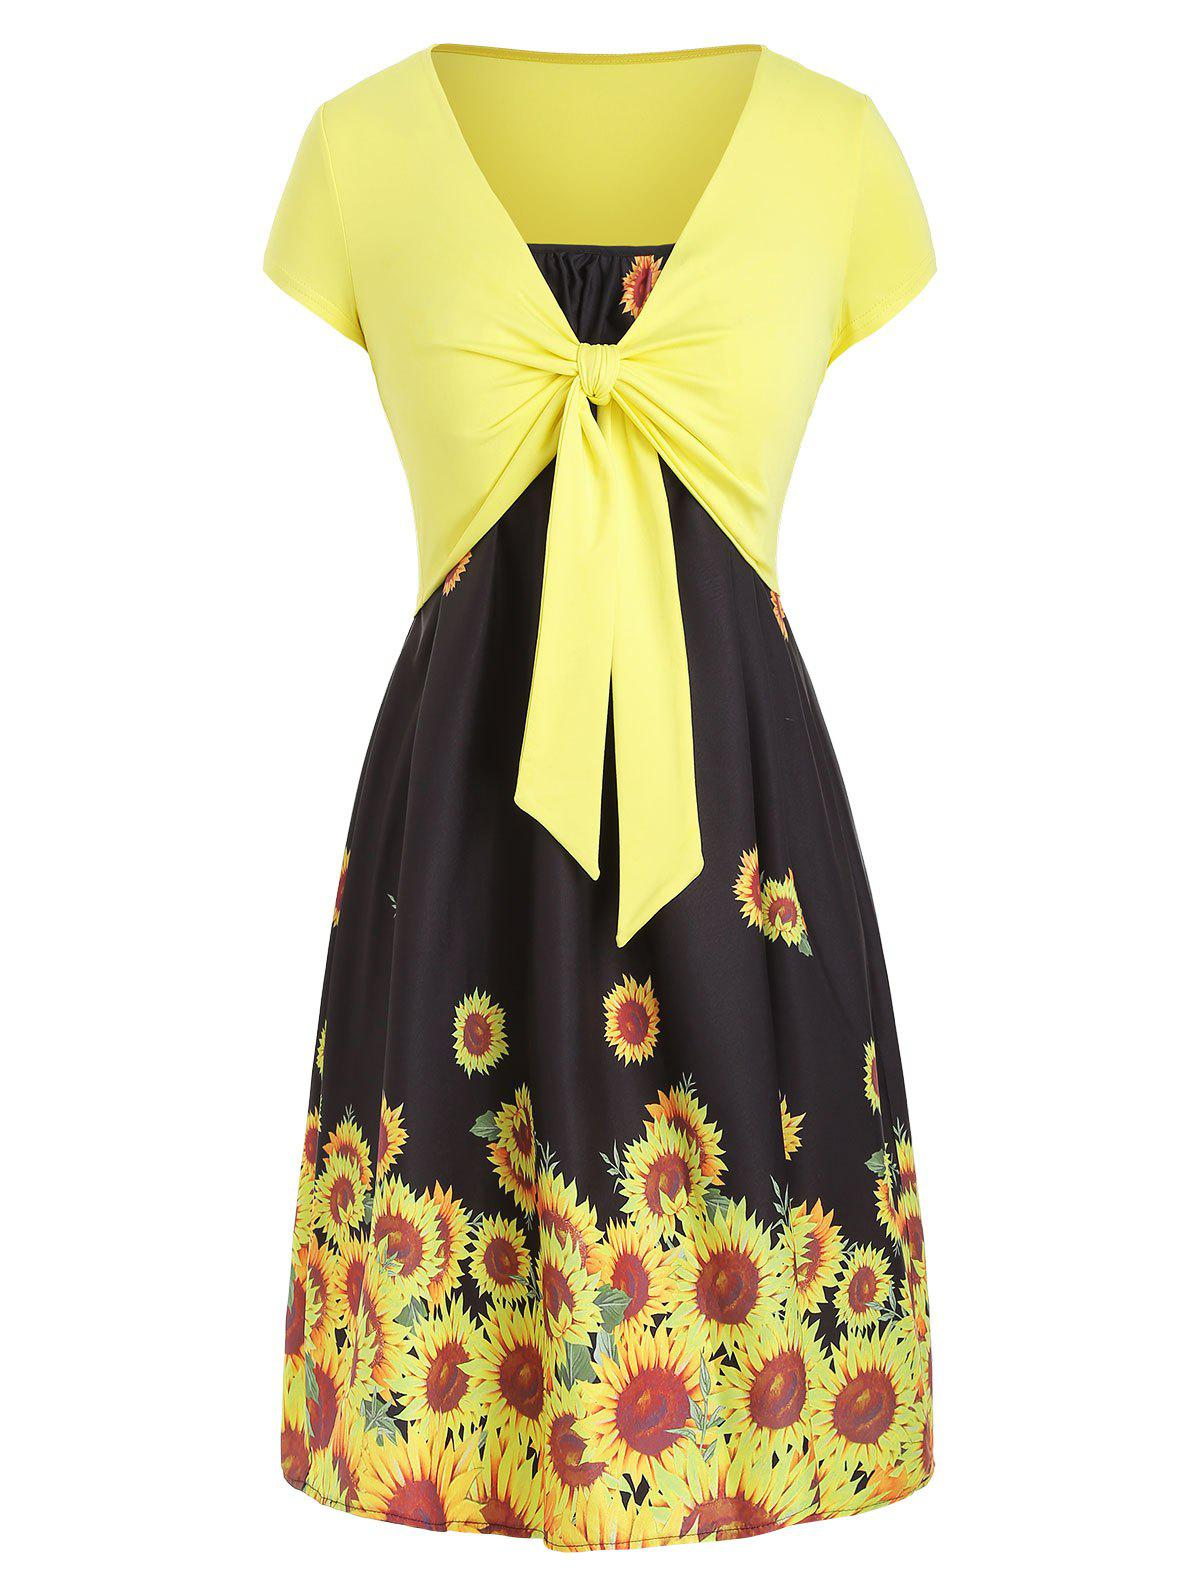 New Cami Sunflower Dress with T-shirt